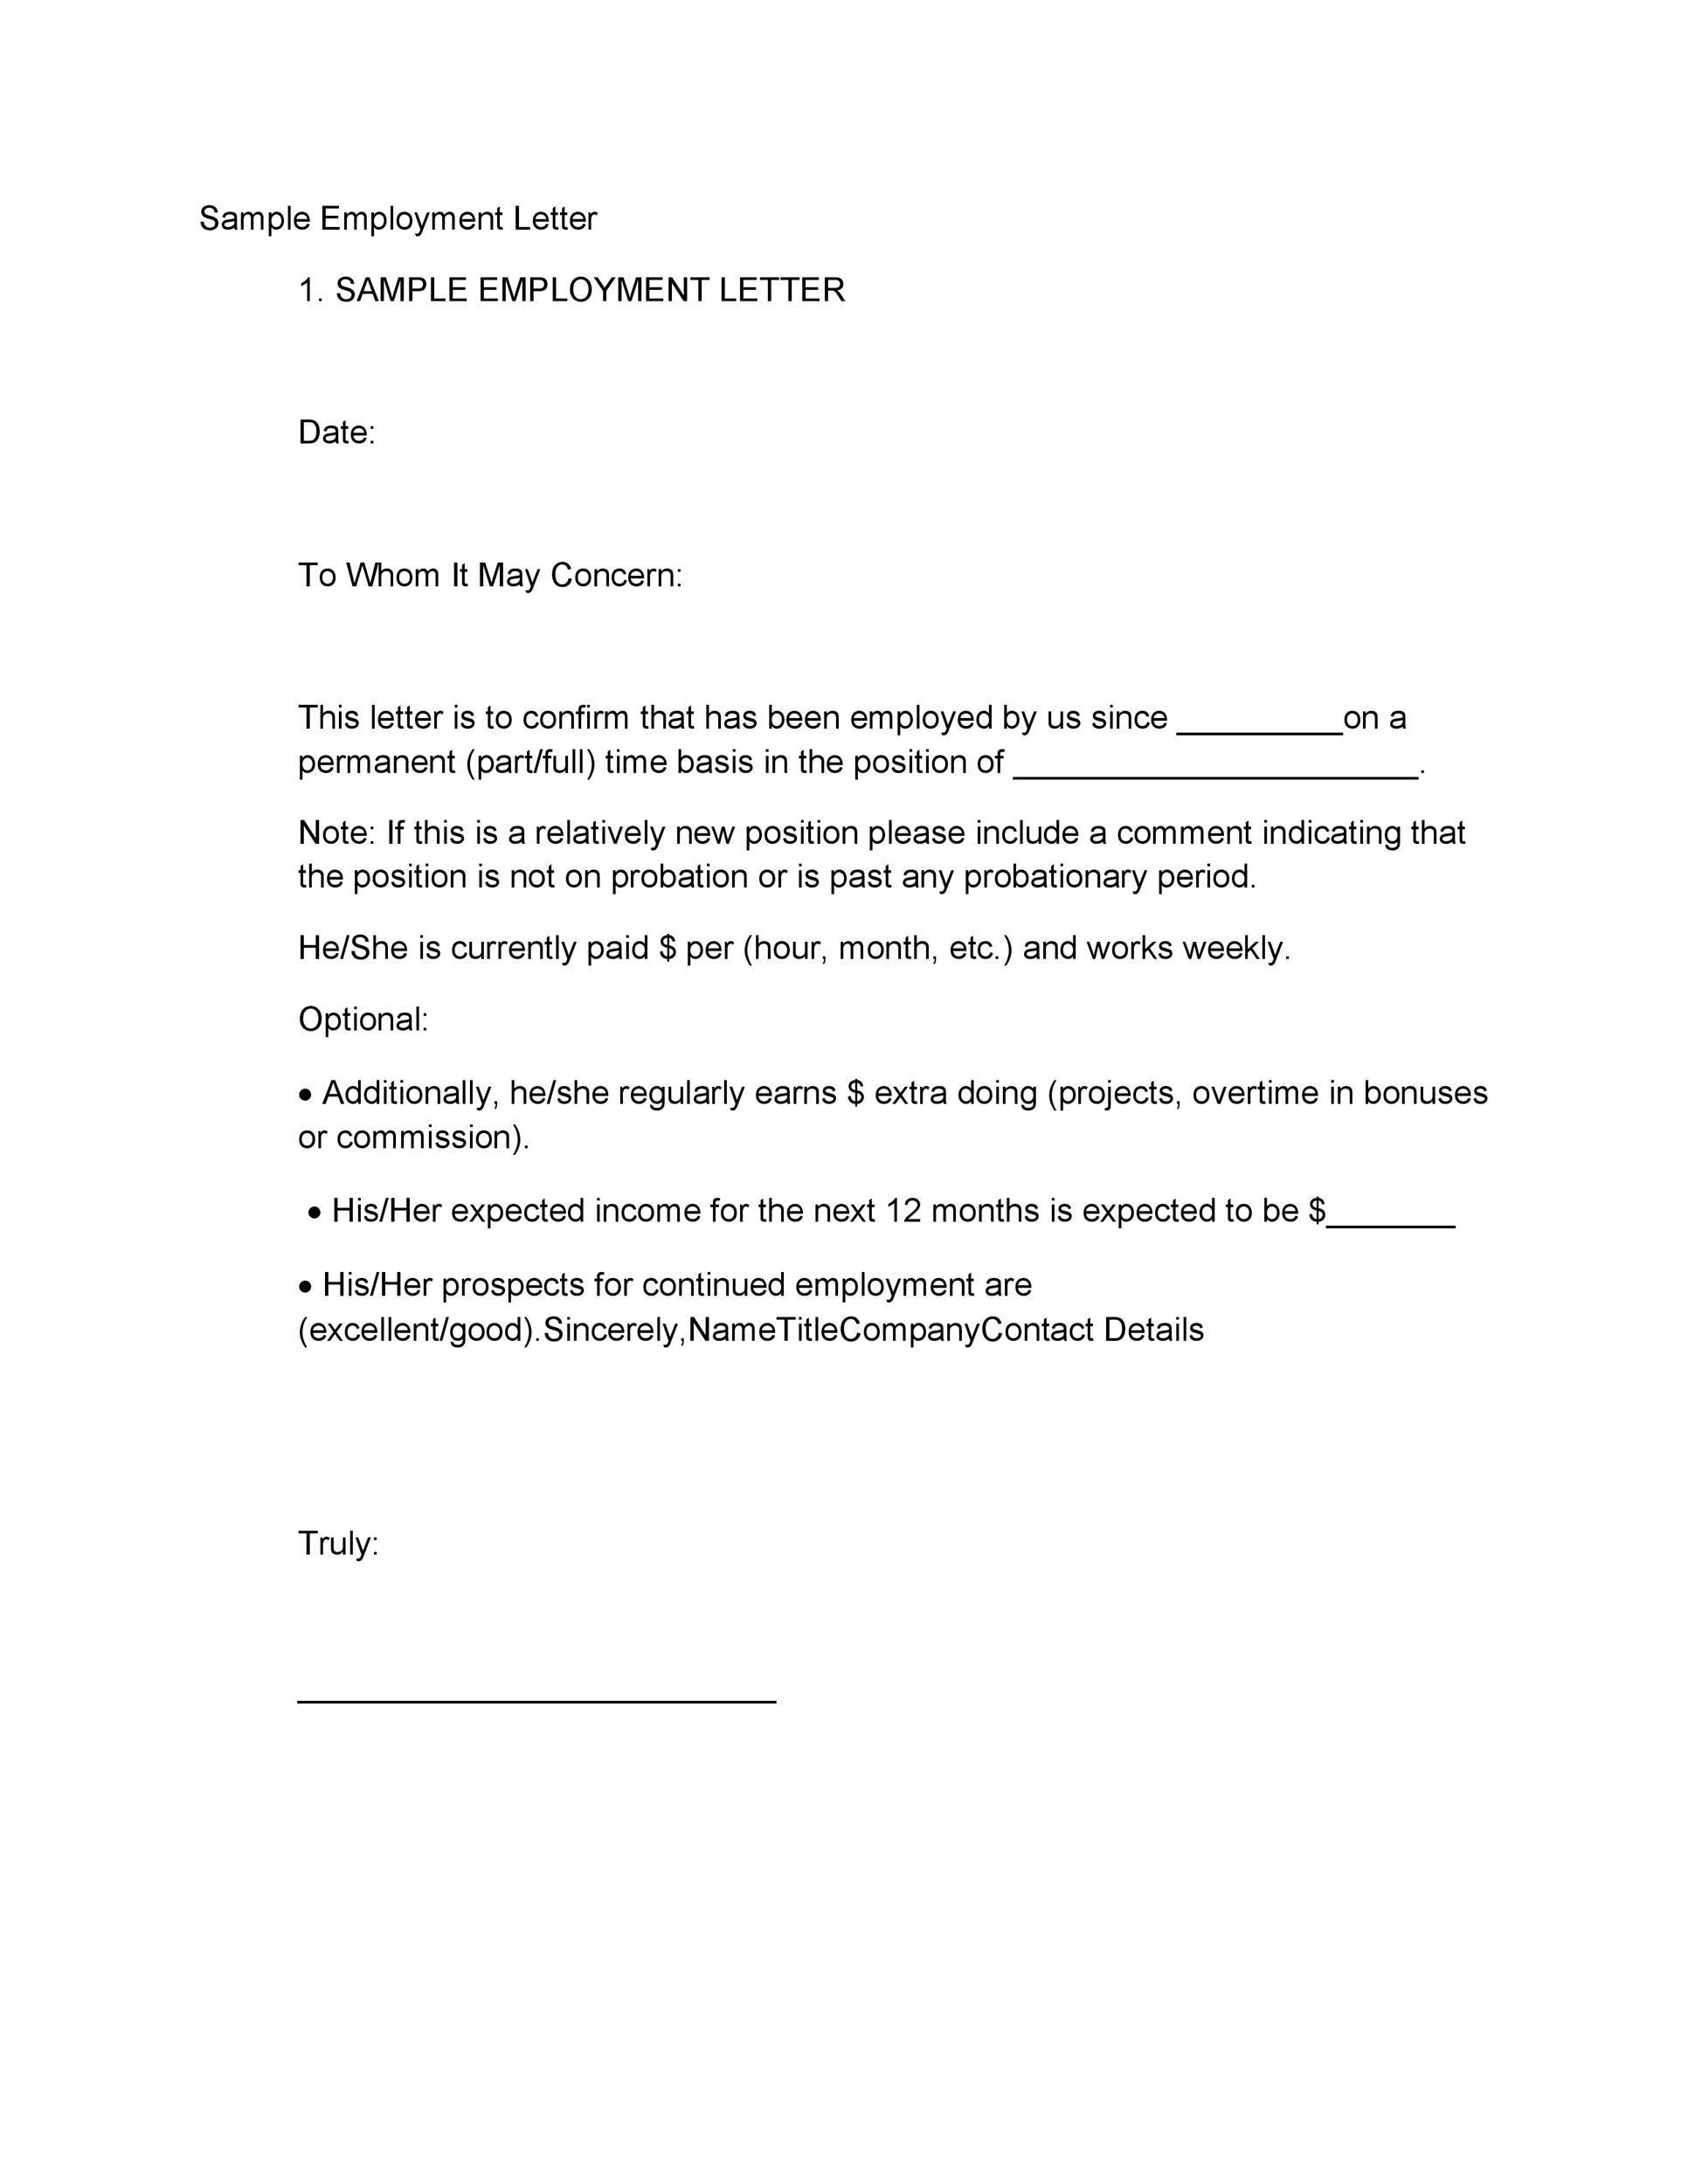 40 proof of employment letters verification forms samples free proof of employment letter template 30 spiritdancerdesigns Image collections